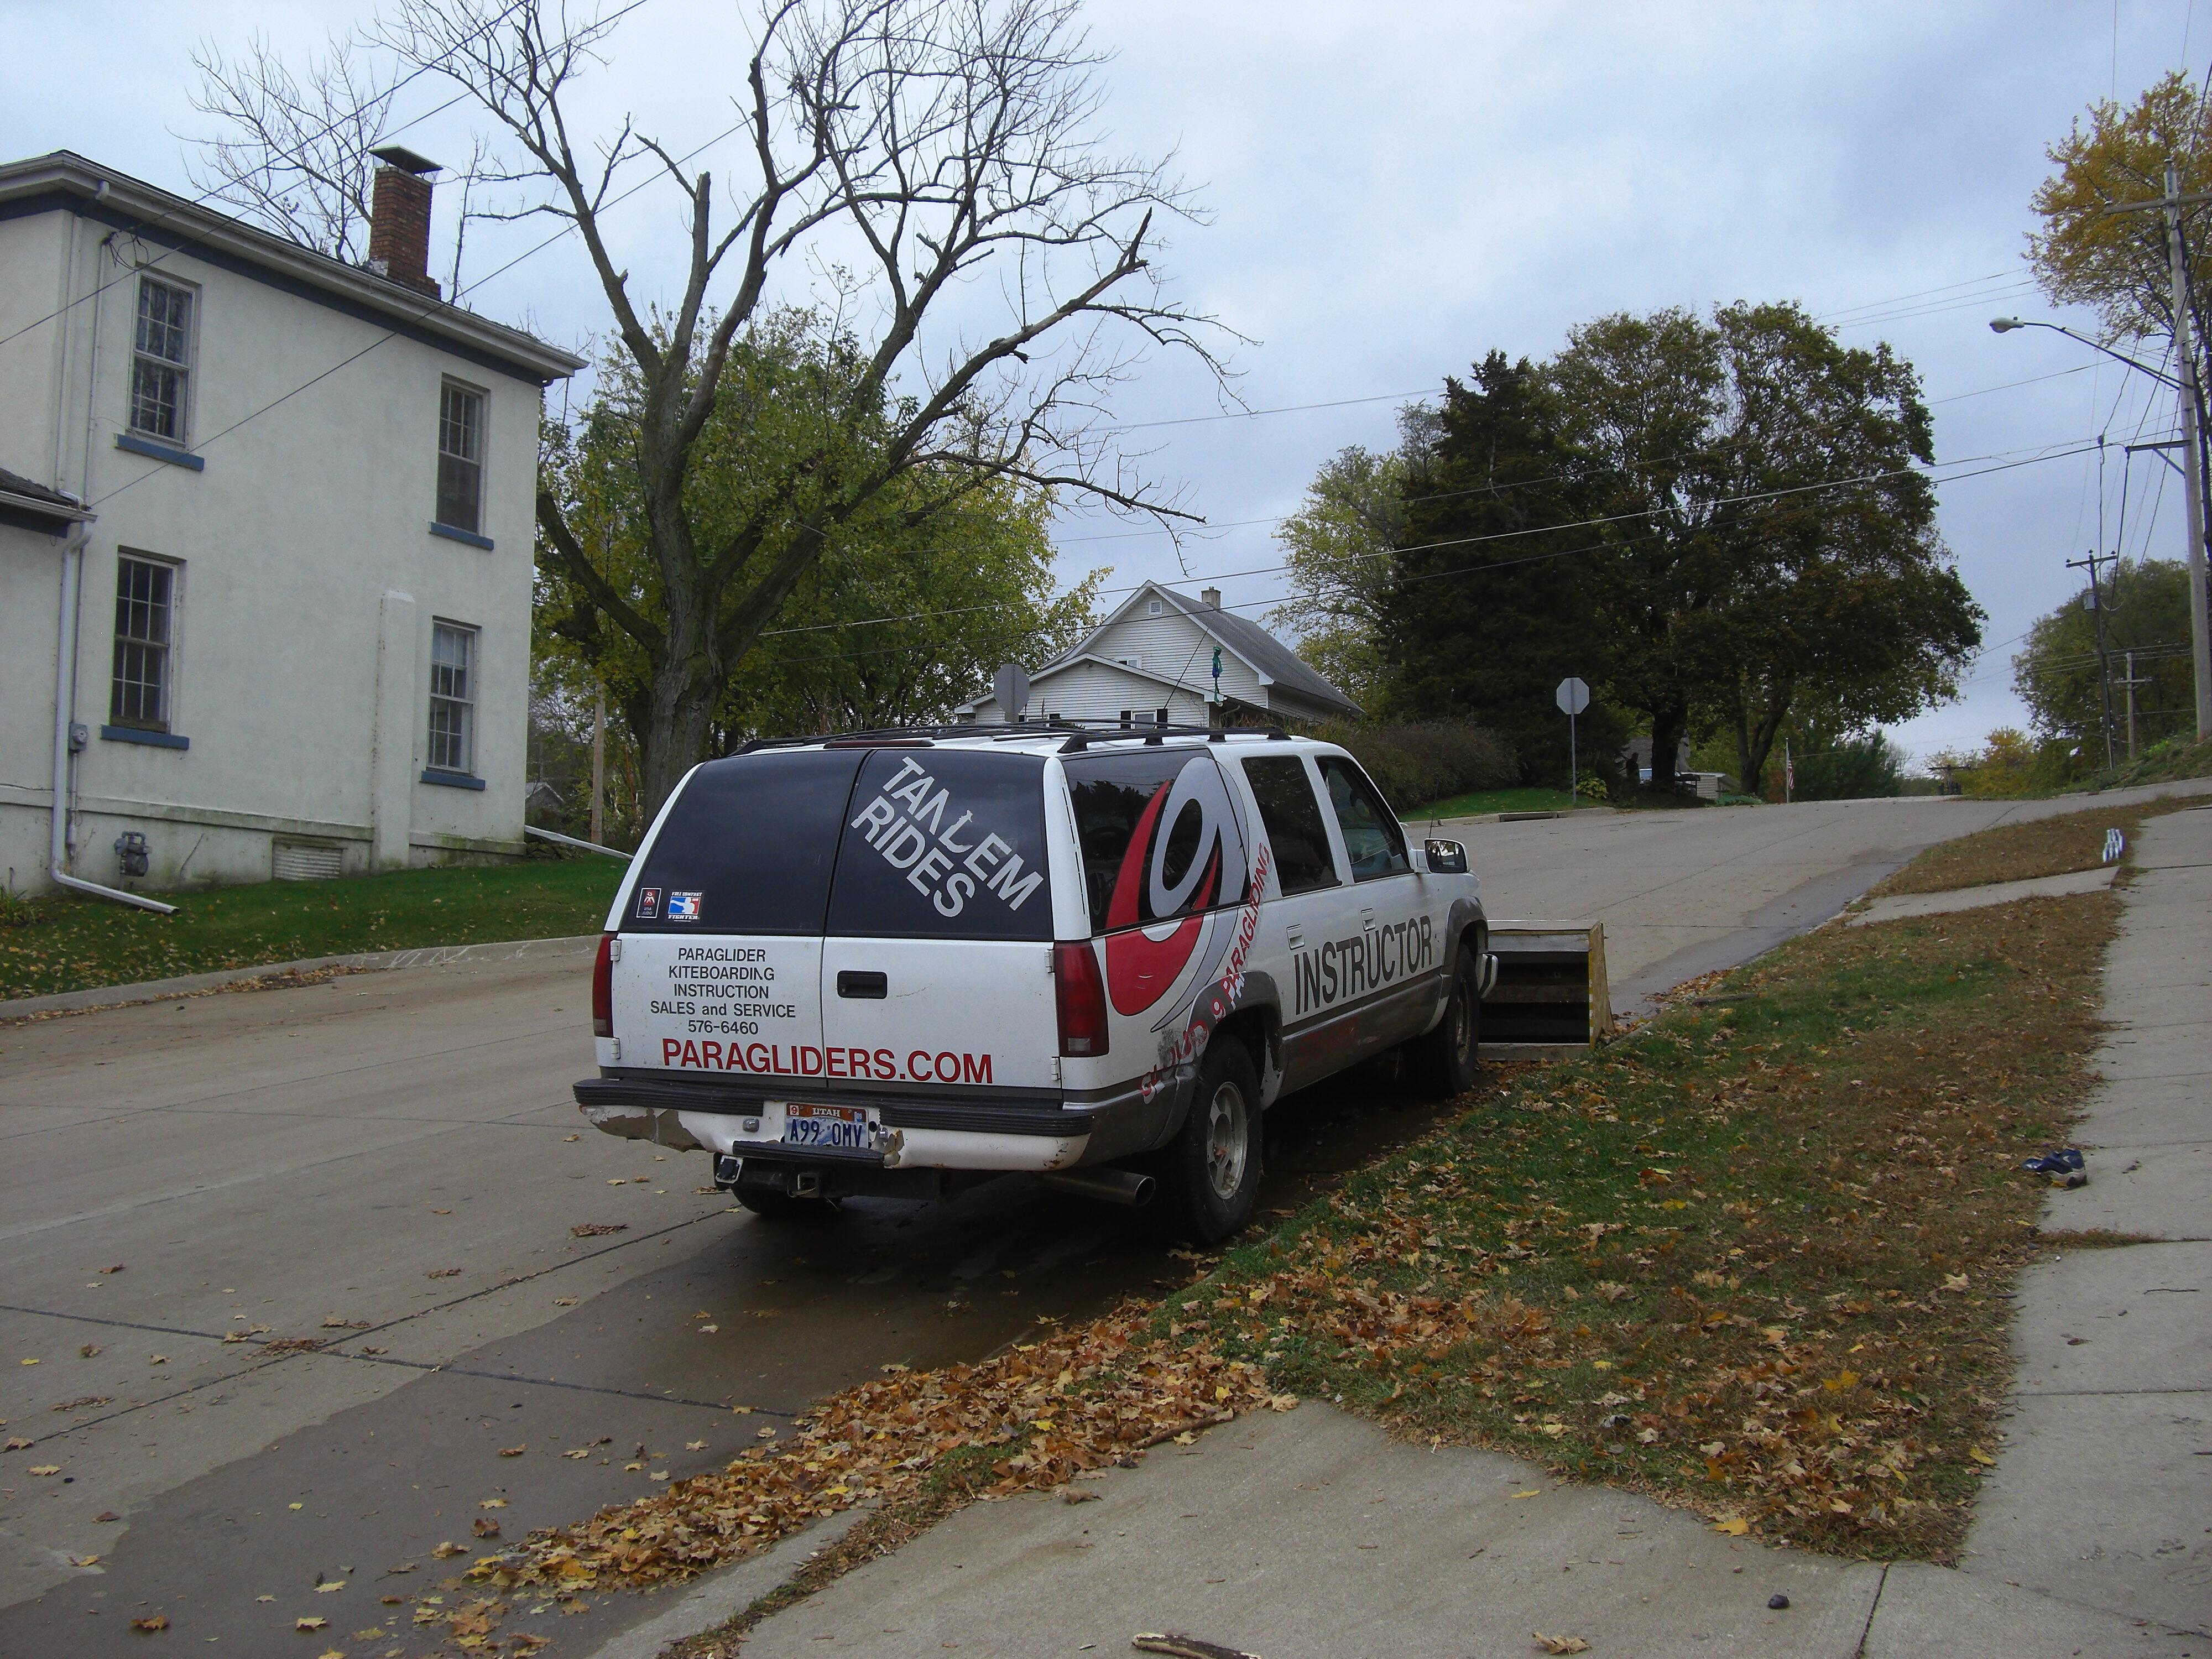 Cloud 9 paragliding instructor truck parked in LeClaire Iowa